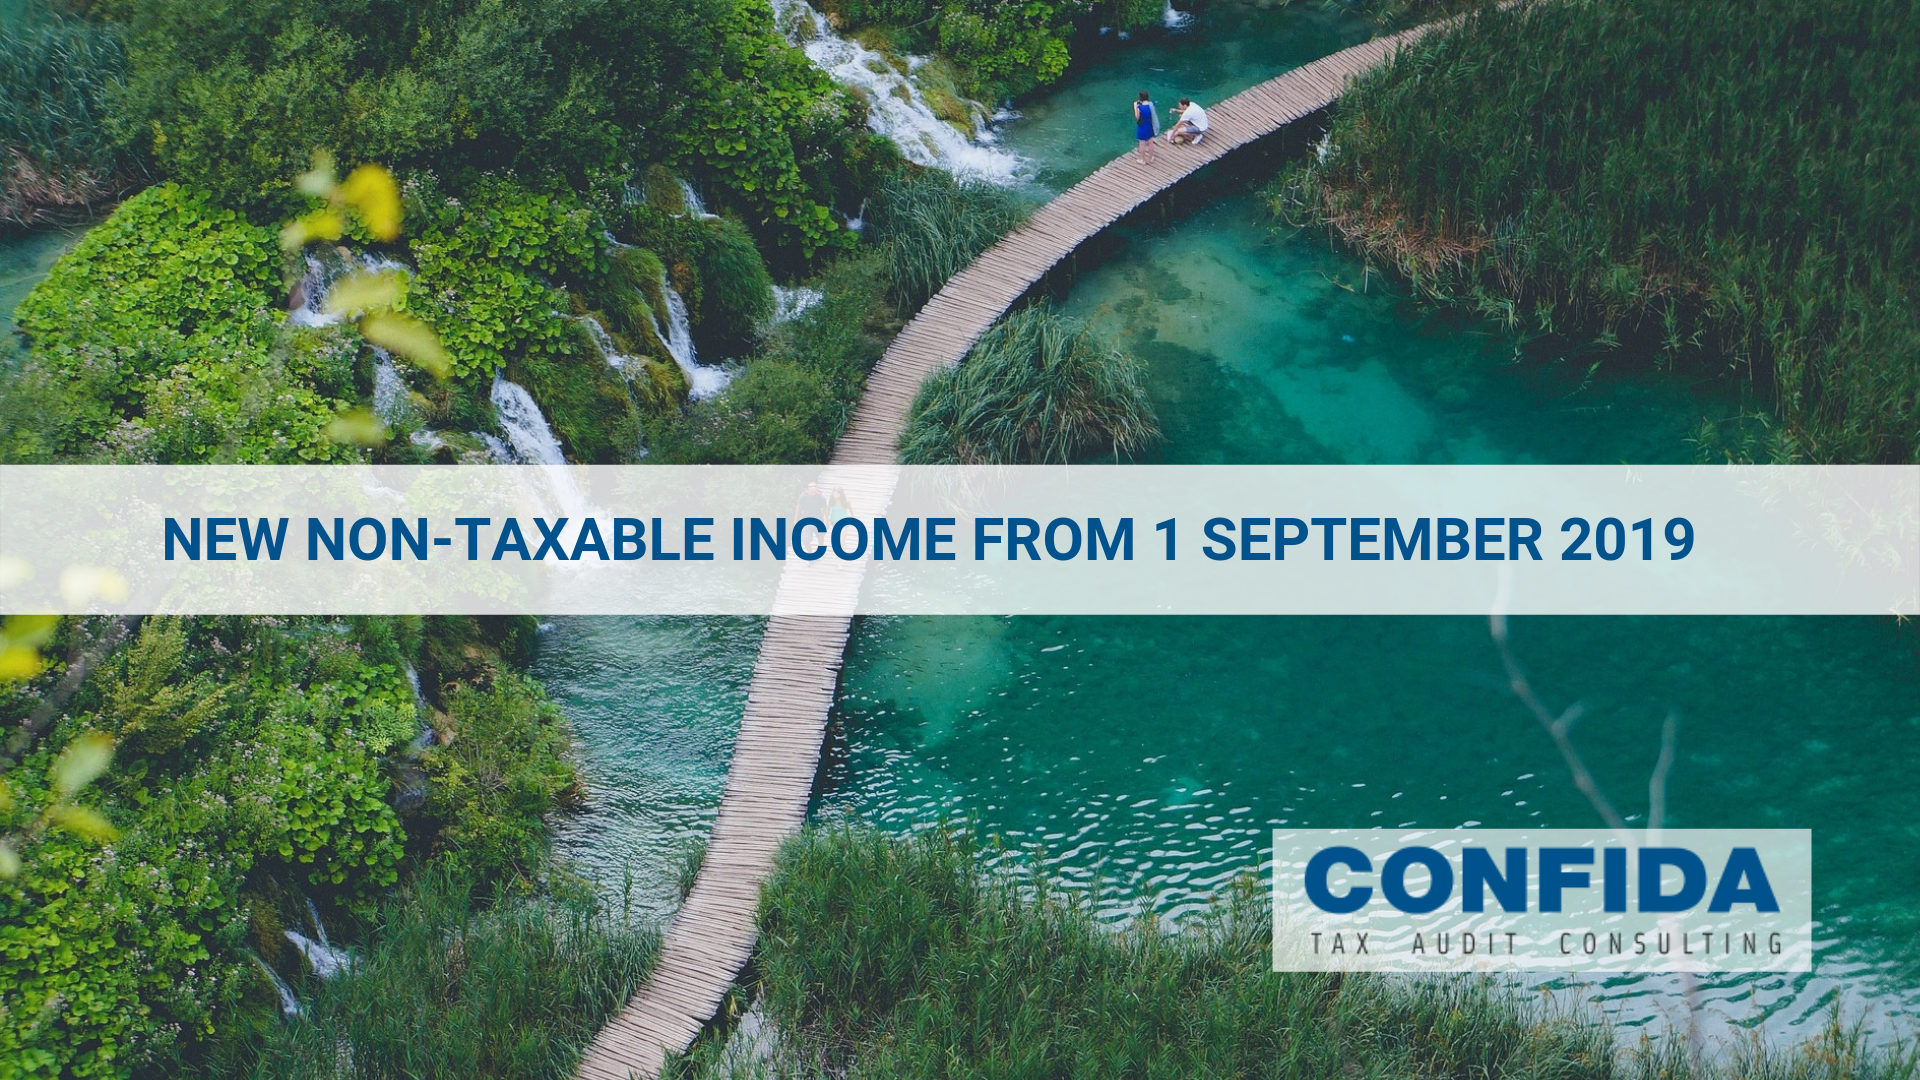 New Non-Taxable Income From 1. September 2019